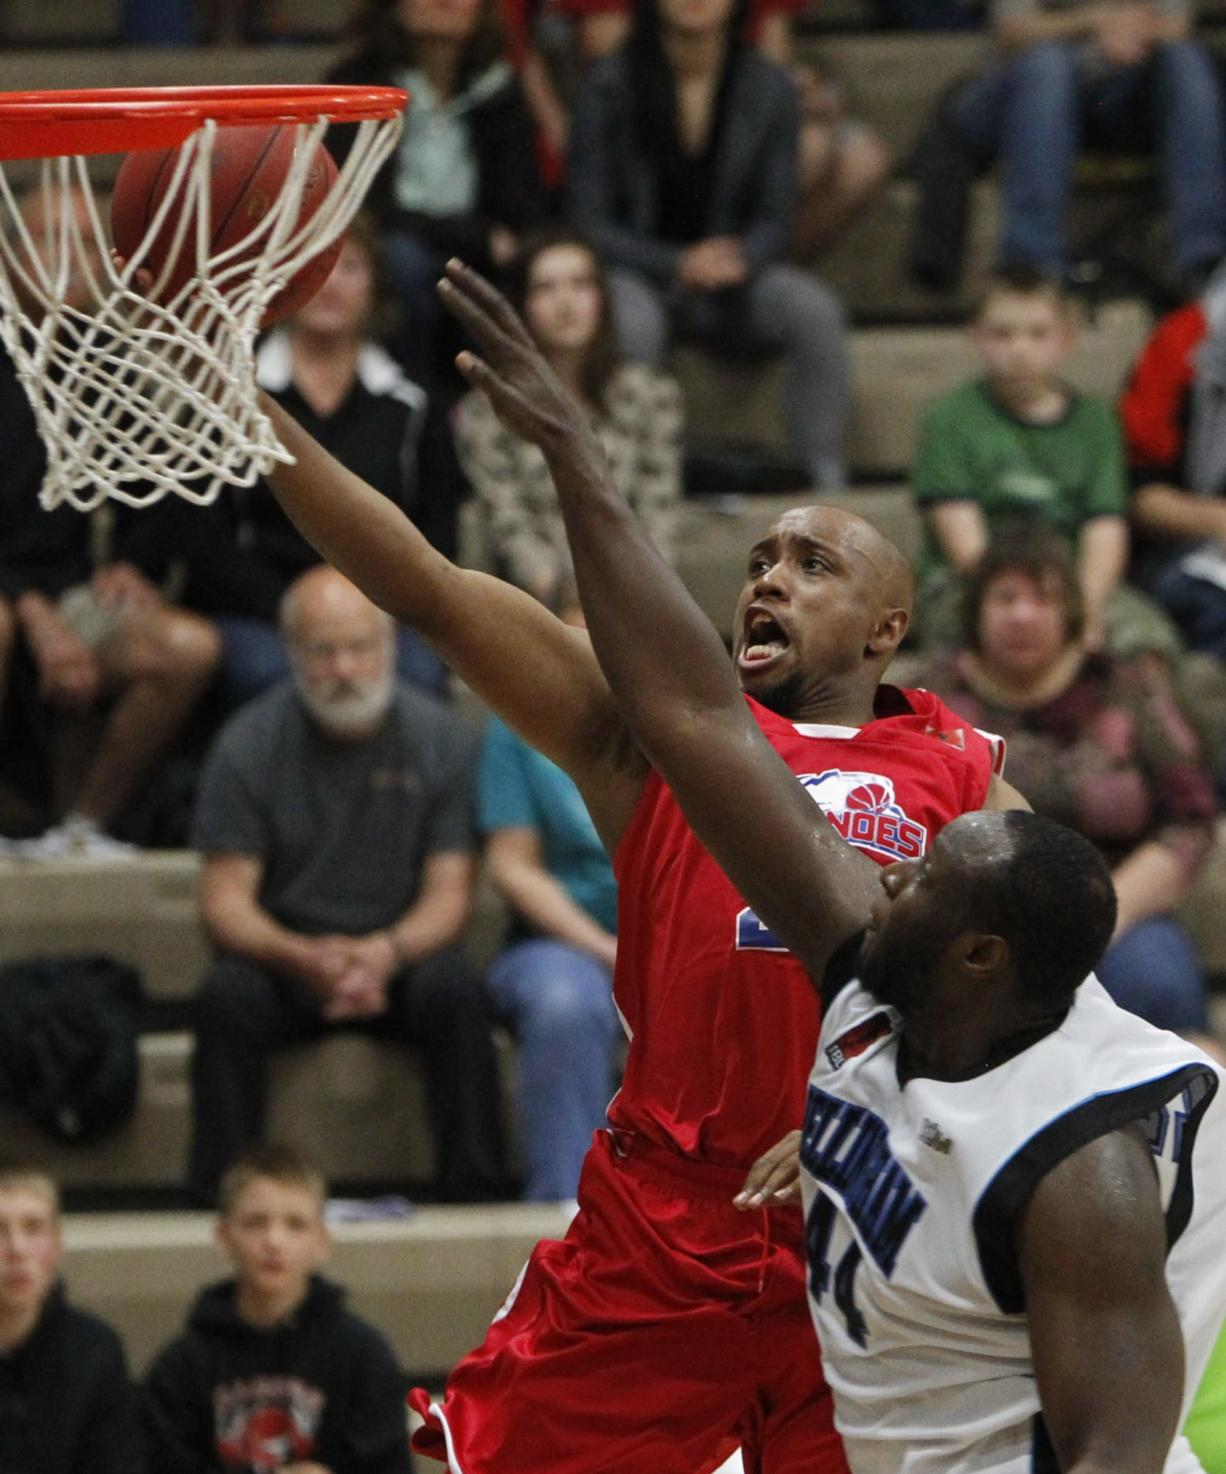 Vancouver Volcanoes guard Andre Murray, left, shoots against Bellingham in a game earlier this season.